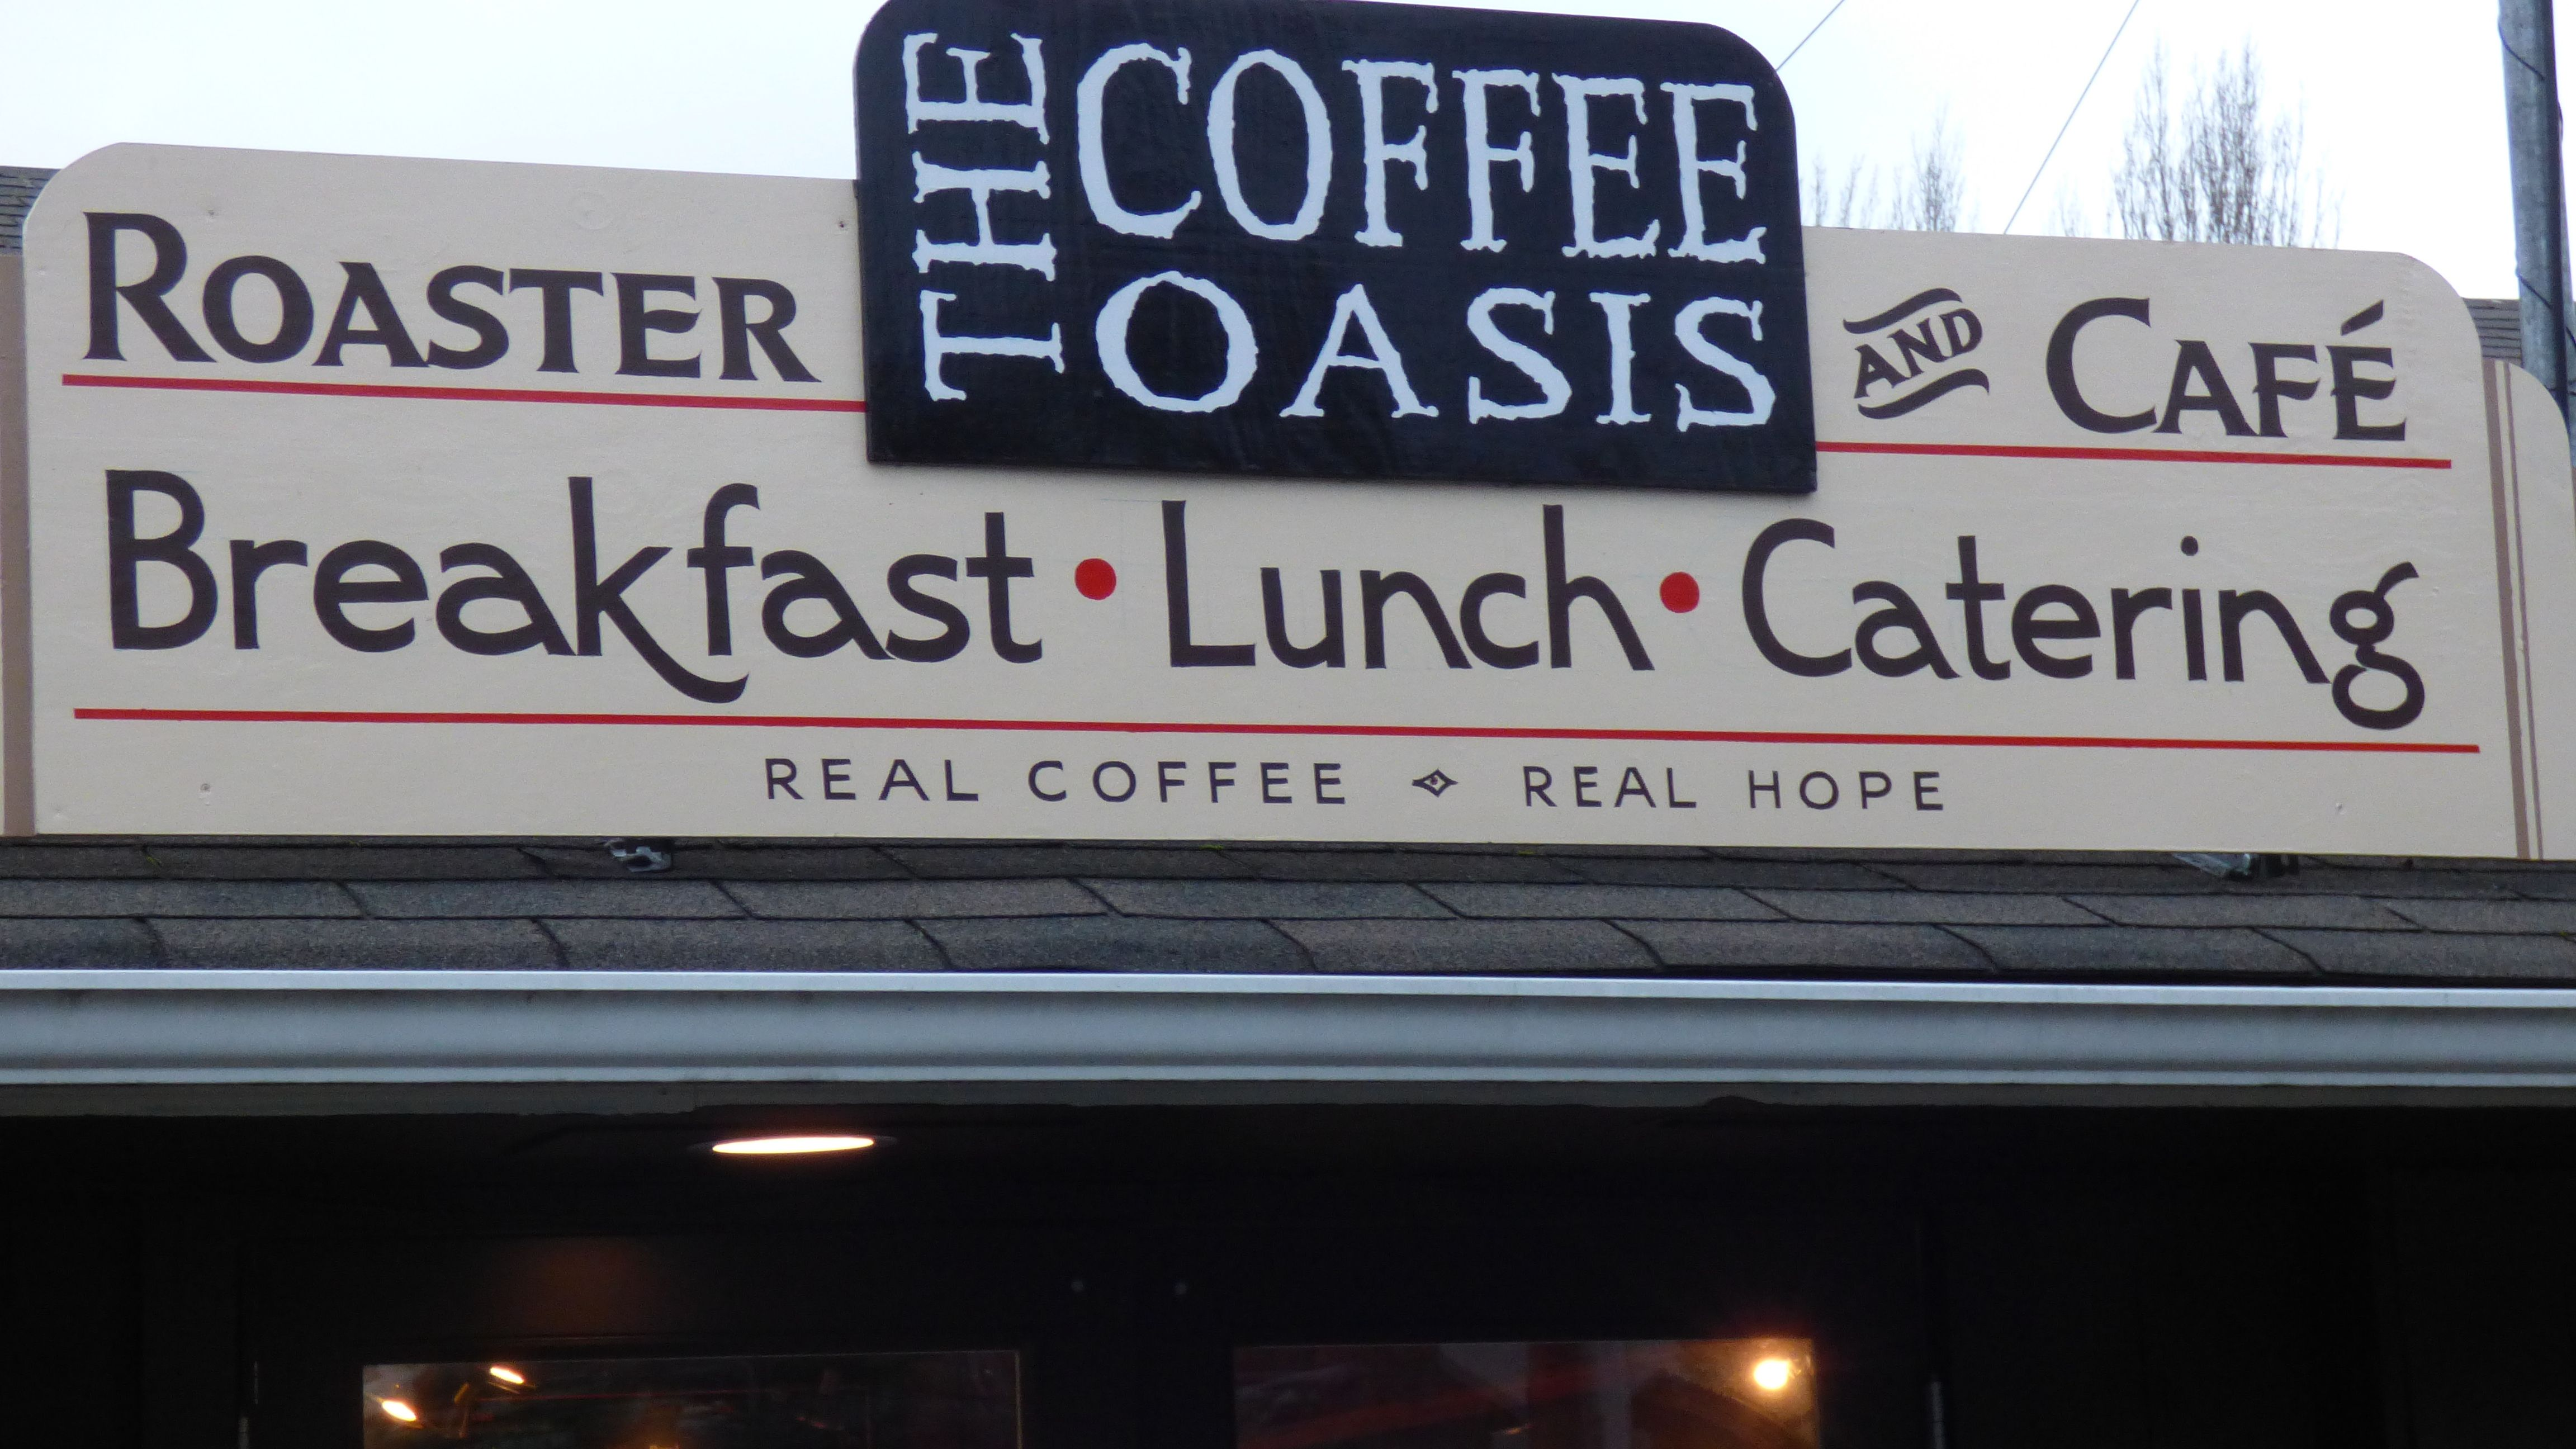 The Coffee Oasis Poulsbo Sign Kitsap Charity Kitsapcares Bremerton Poulsbo Port Orchard Photo Ken Rury S Coffee Shop Business Real Coffee Lunch Catering